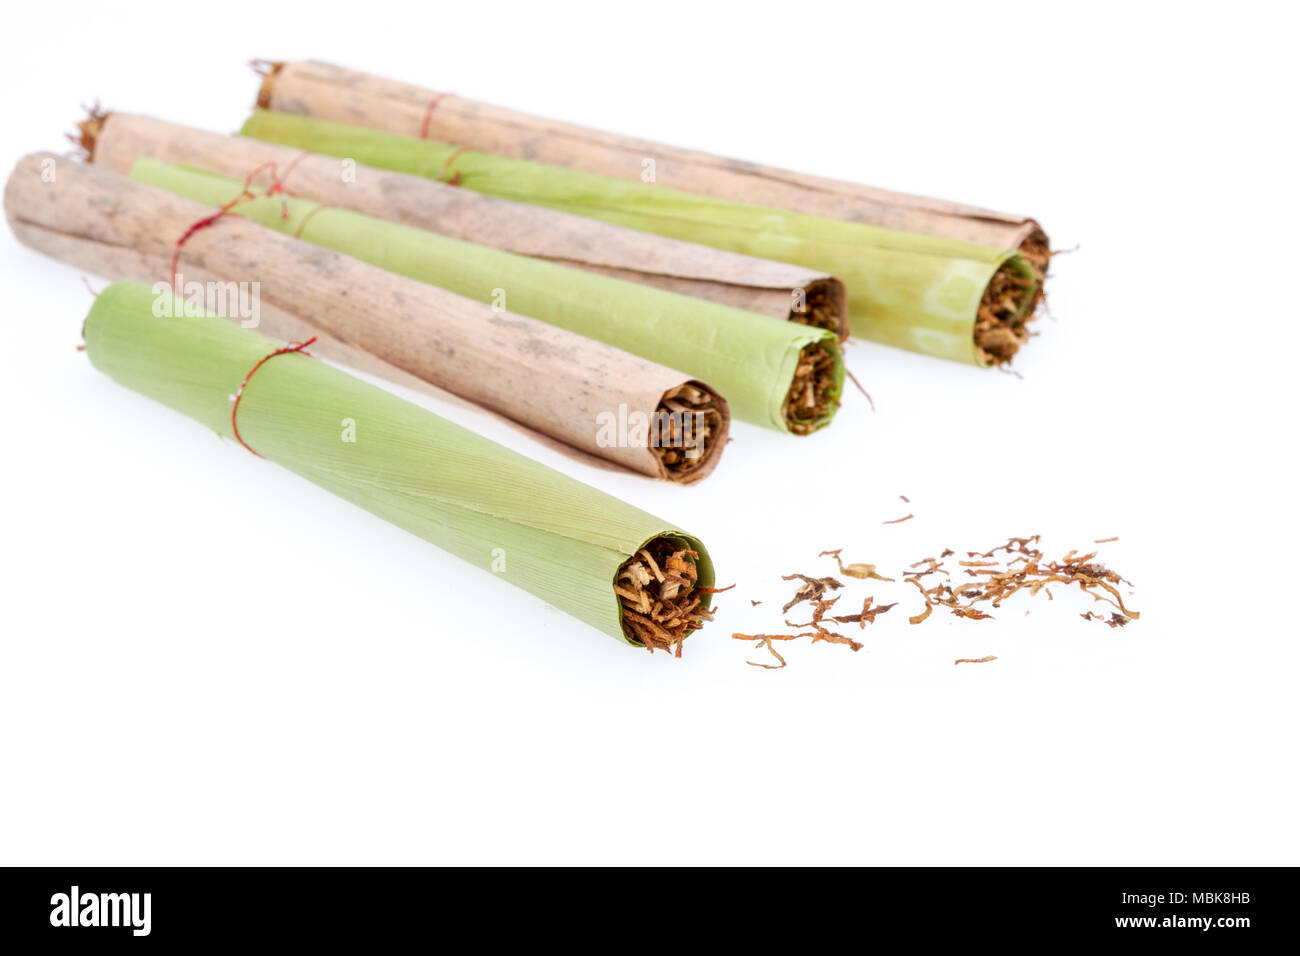 Cigar and tobacco - handmade from dried banana leaf - Stock Image